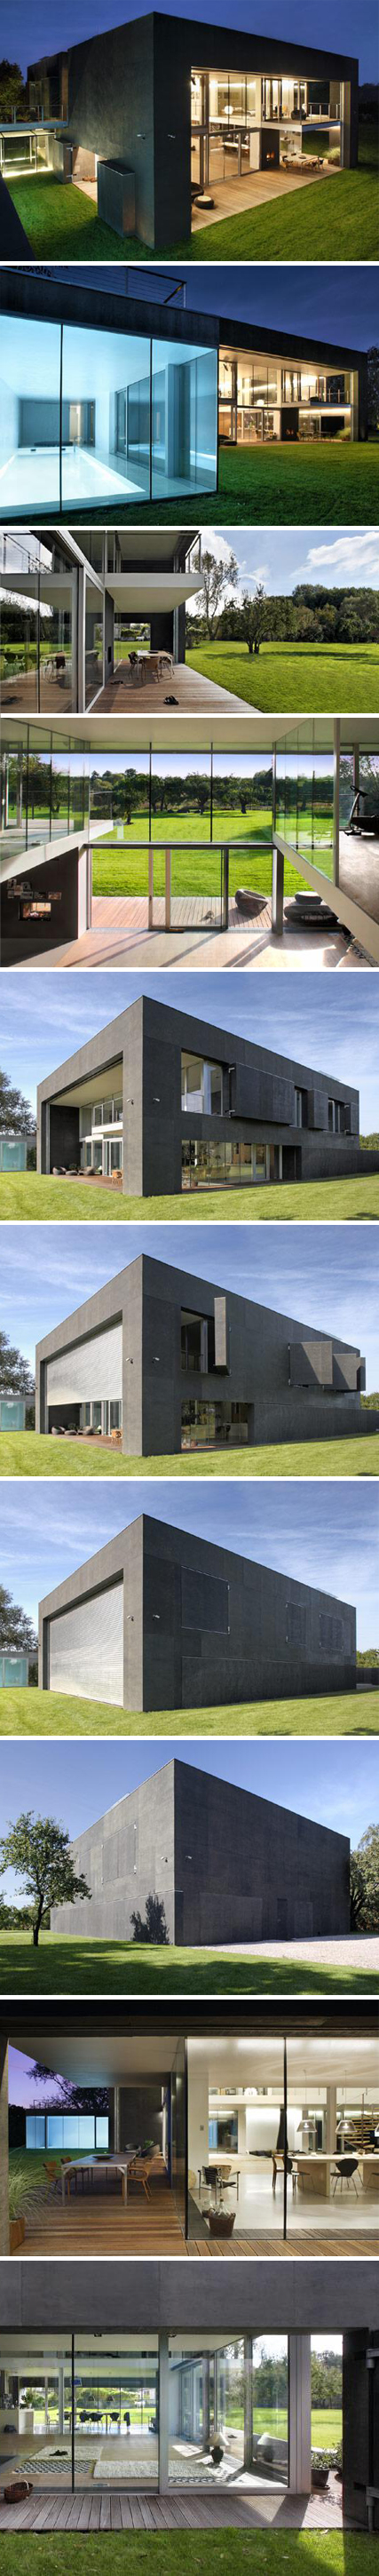 """Zombie Proof House (""""The Safe House,"""" designed by KWK Promes)   on home design, fortified house design, guard house design, zombie apocalypse house, earthquake proof house design, best underground bunker design, earthquake resistant building design, minecraft hut design, coach house design, native house design, hurricane proof house design, defensive house design, modern bunker design, oban & 2 by agushi workroom design, zombie cakes design, zombie protection house, underground concrete house design, minimal house design,"""